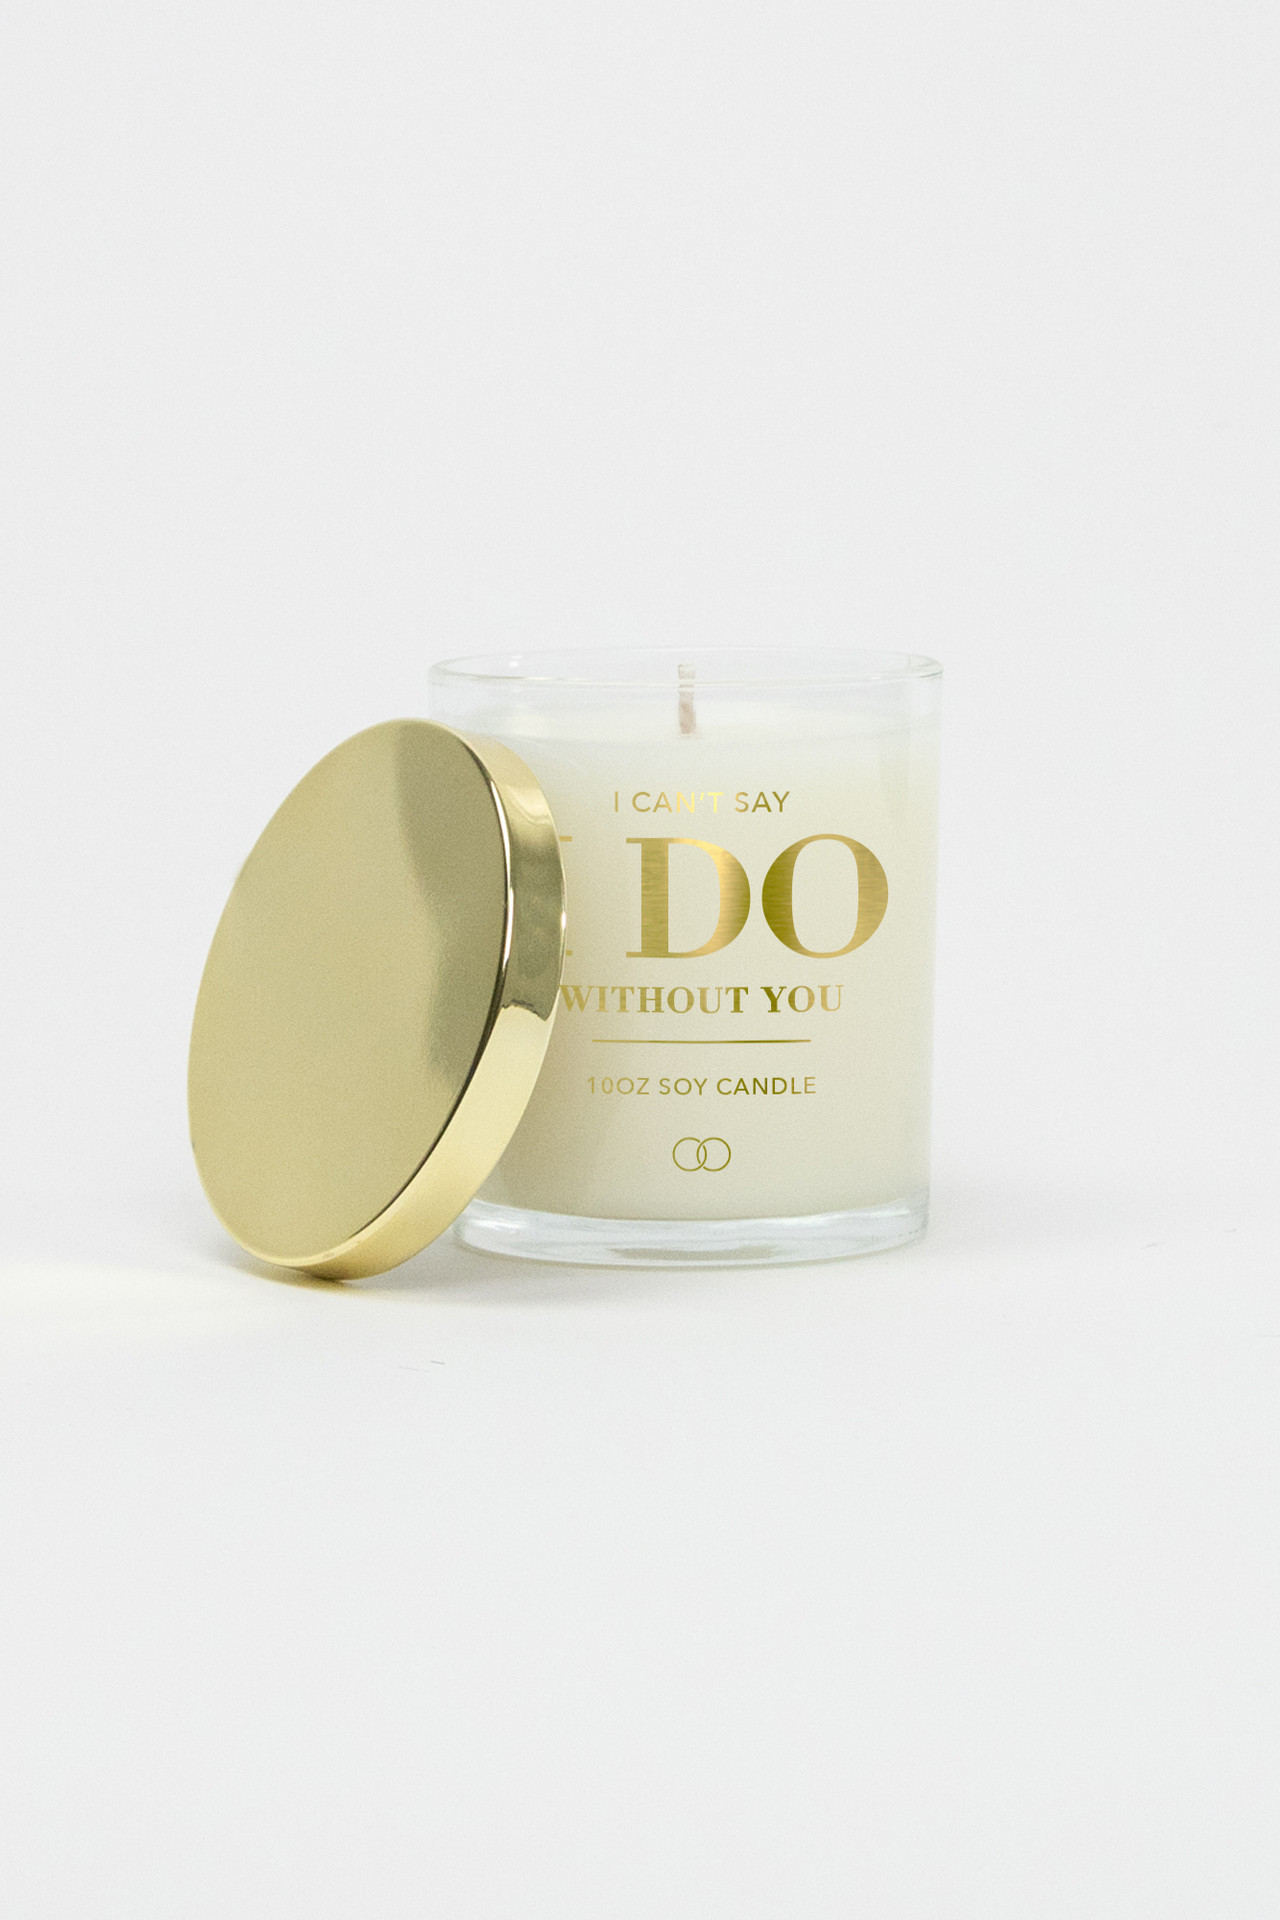 Celebration Glass Soy Candle - Can't Say I Do (Gold)